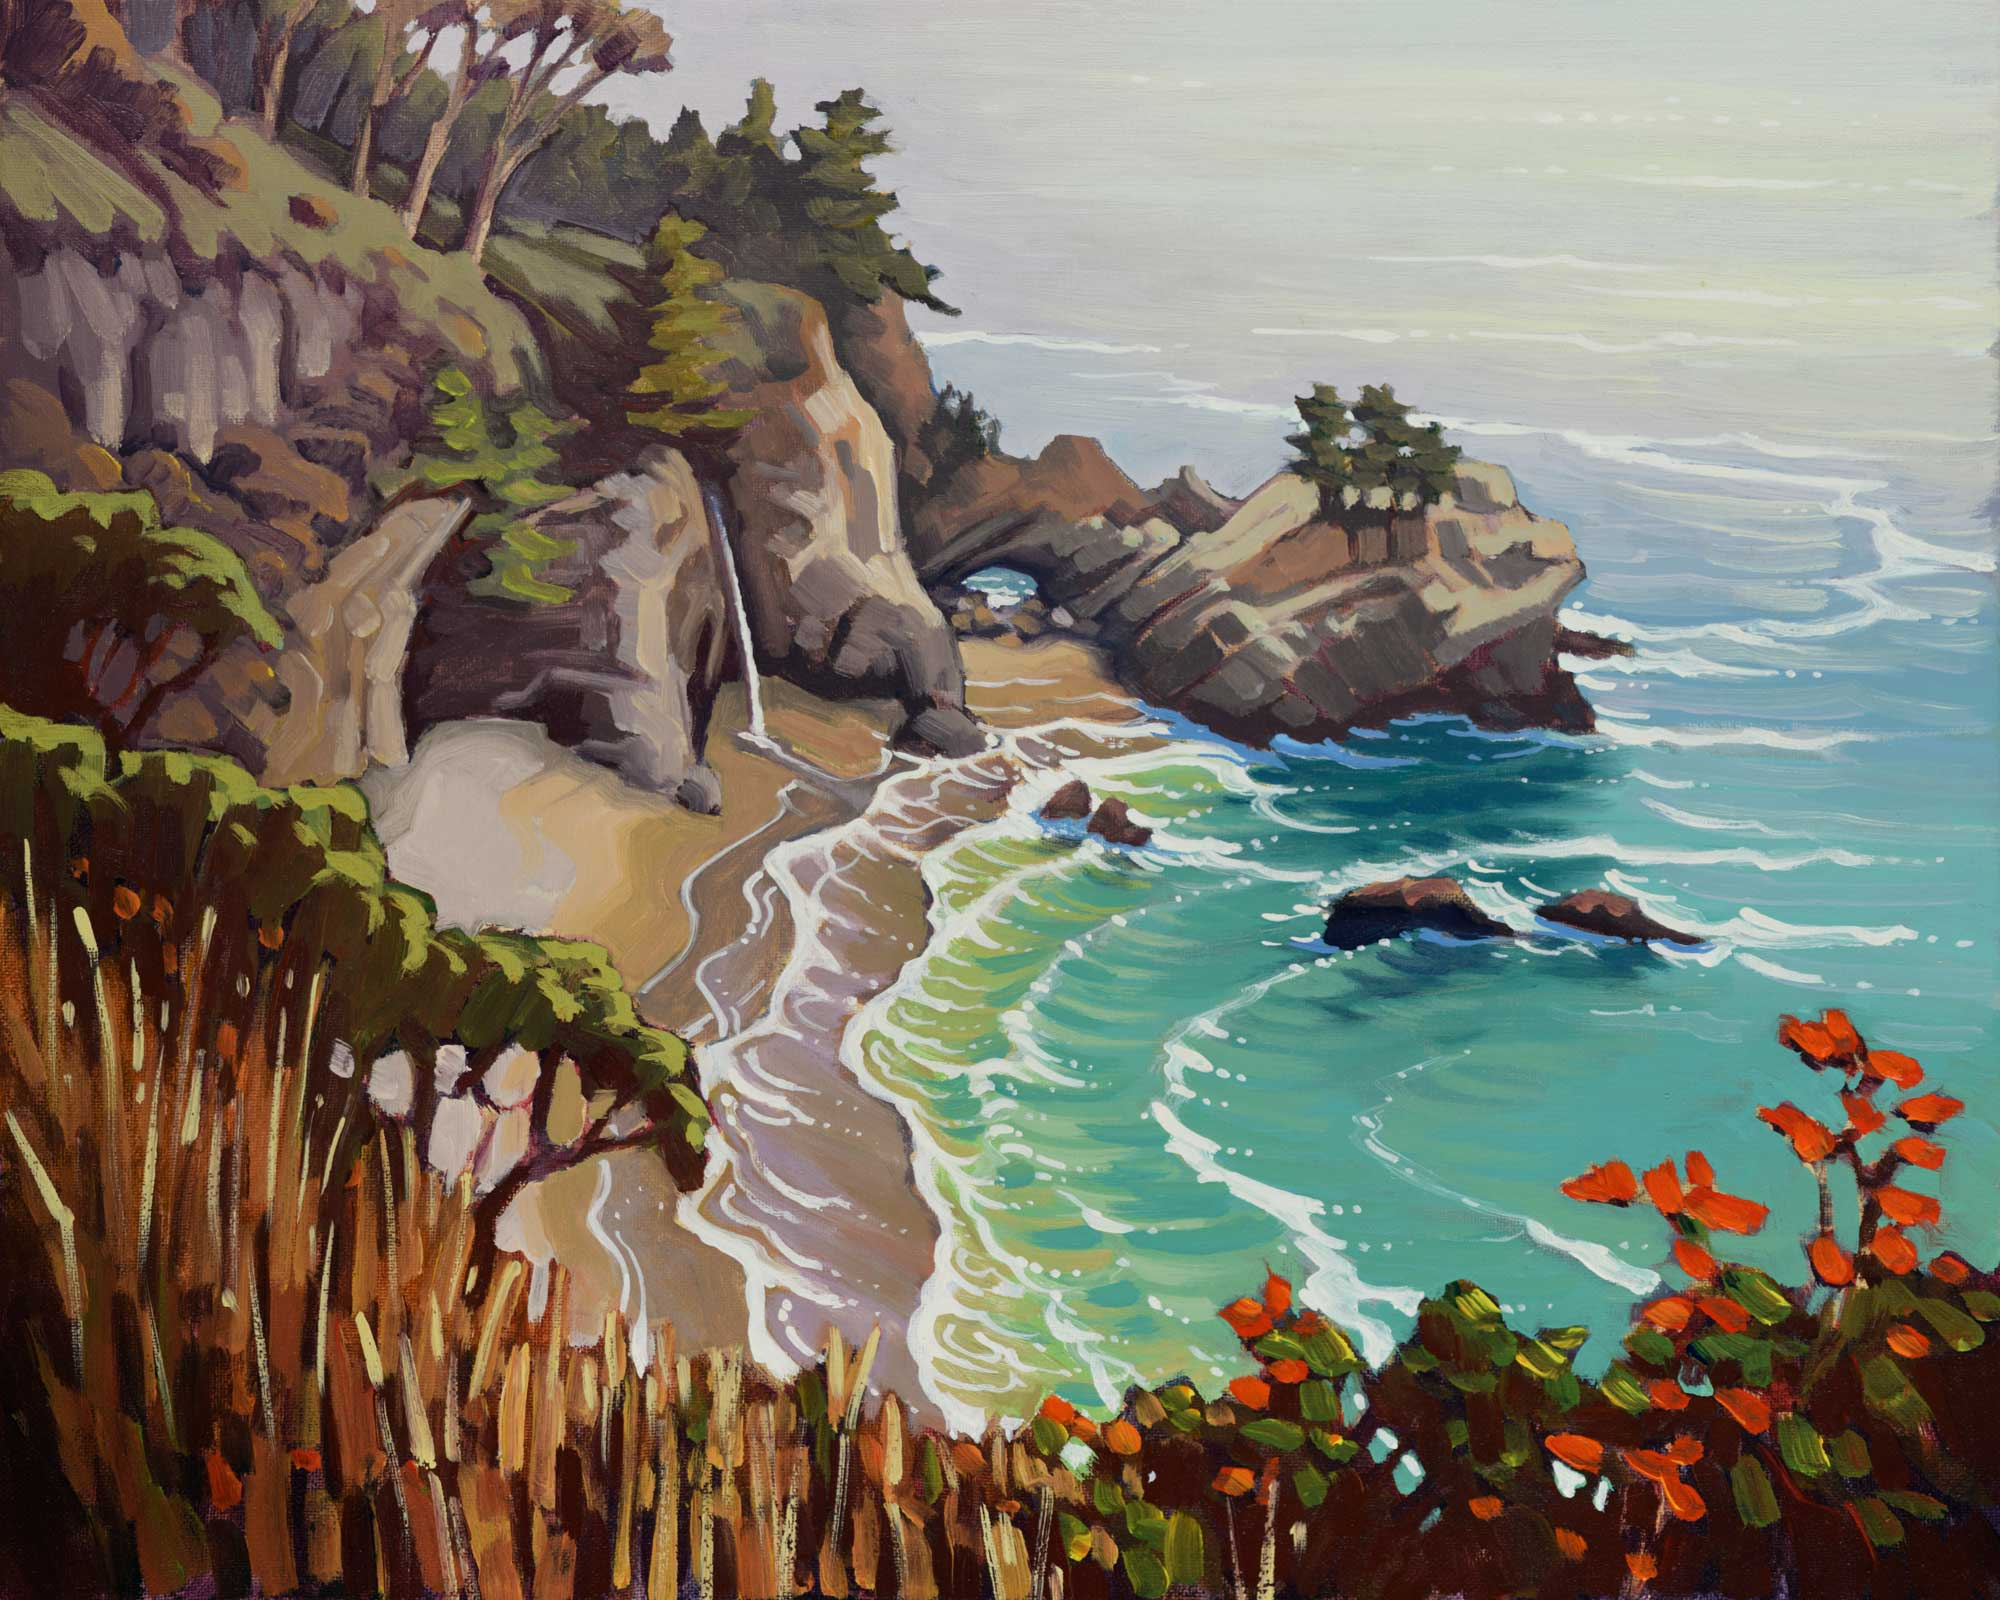 Plein air artwork of McWay Falls on the Big Sur Coast of Monterey in Central California